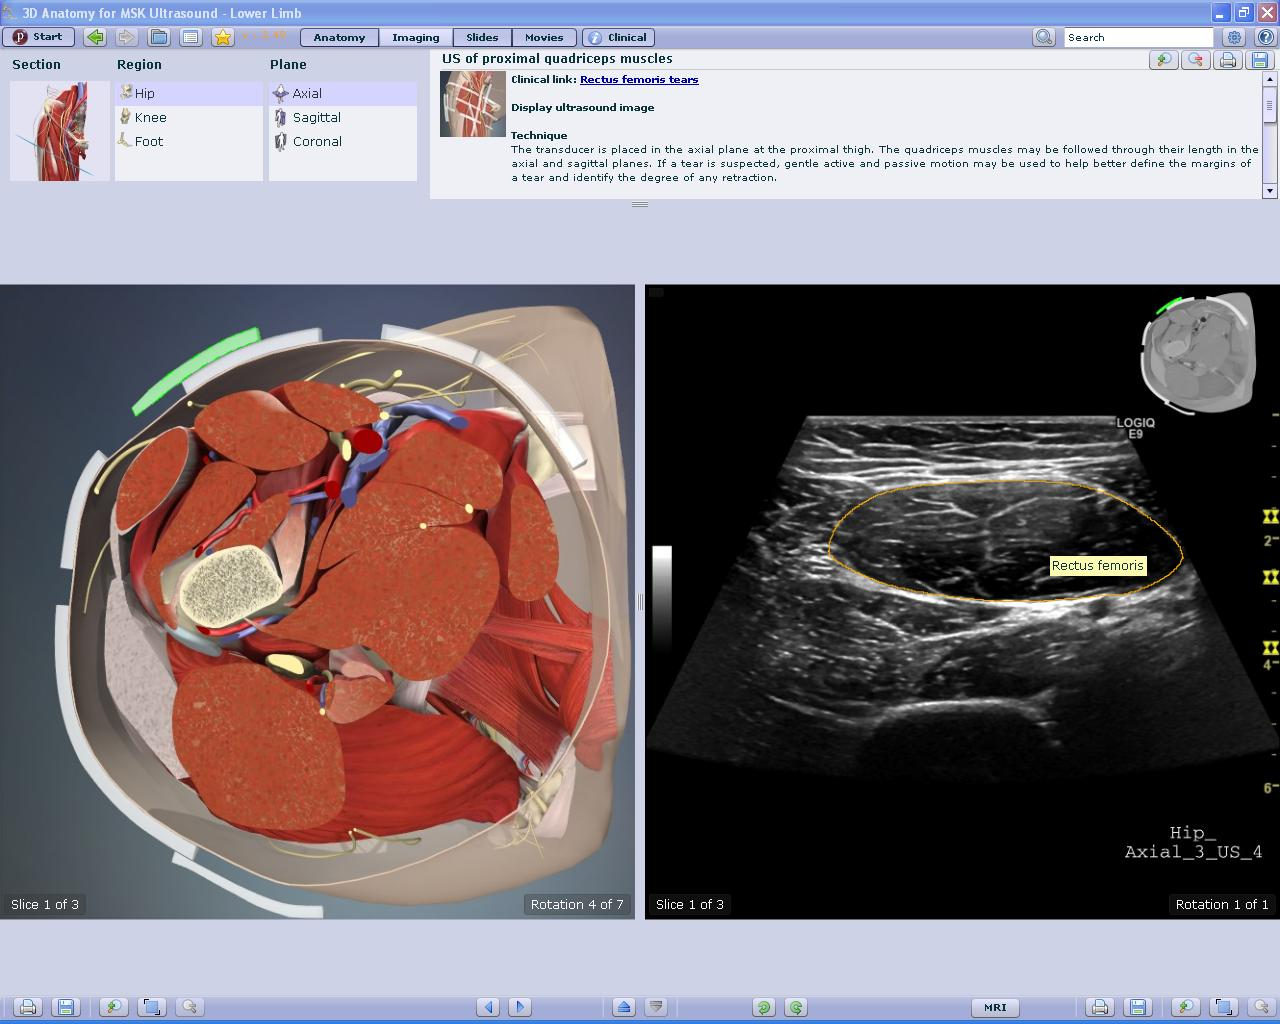 Primal Pictures Launches 3D Anatomy for Musculoskeletal Ultrasound ...